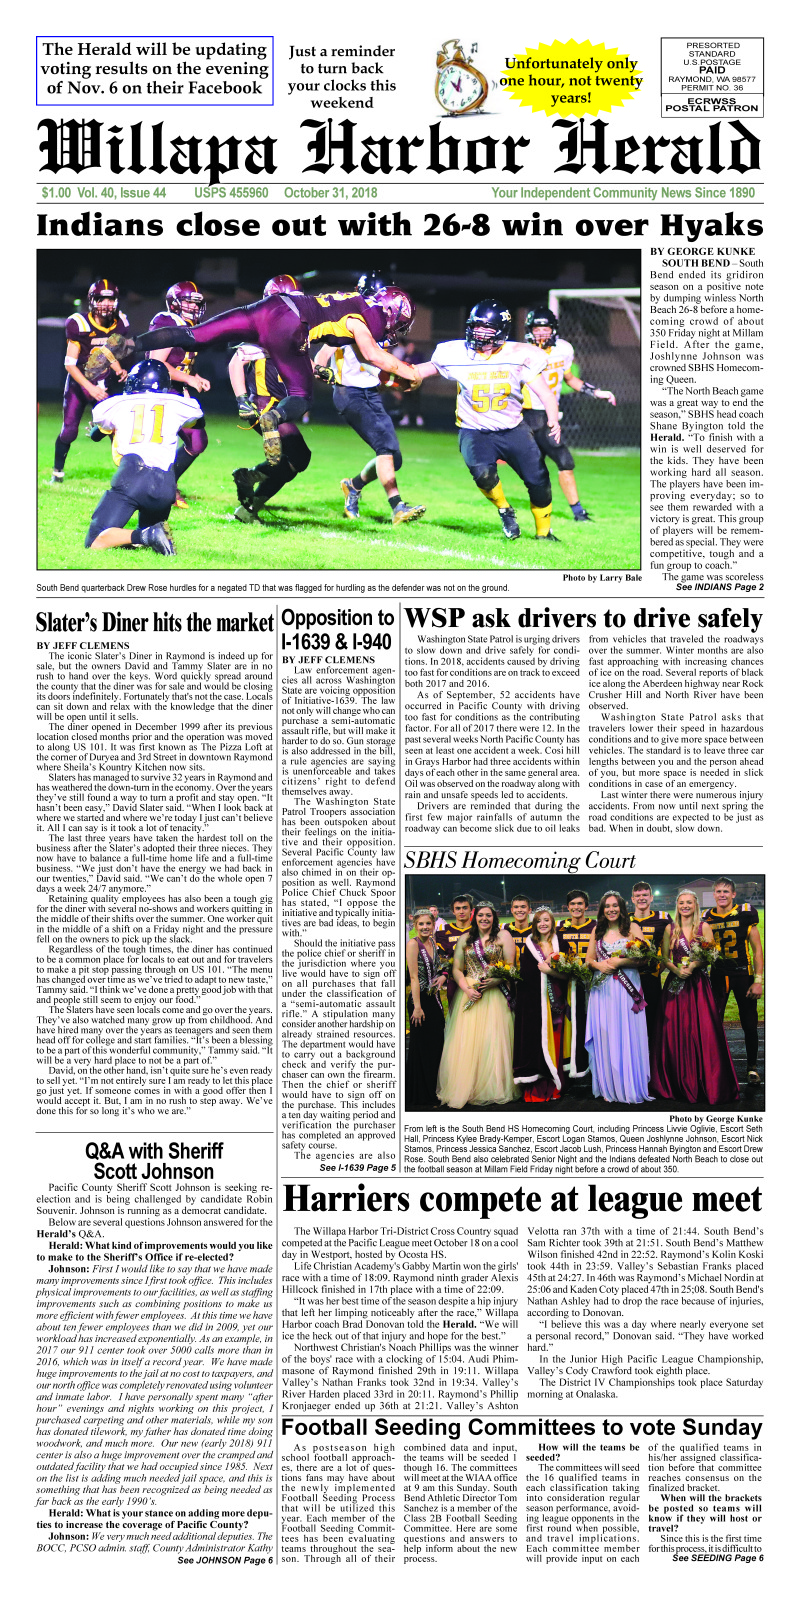 October 31, 2018 Willapa Harbor Herald